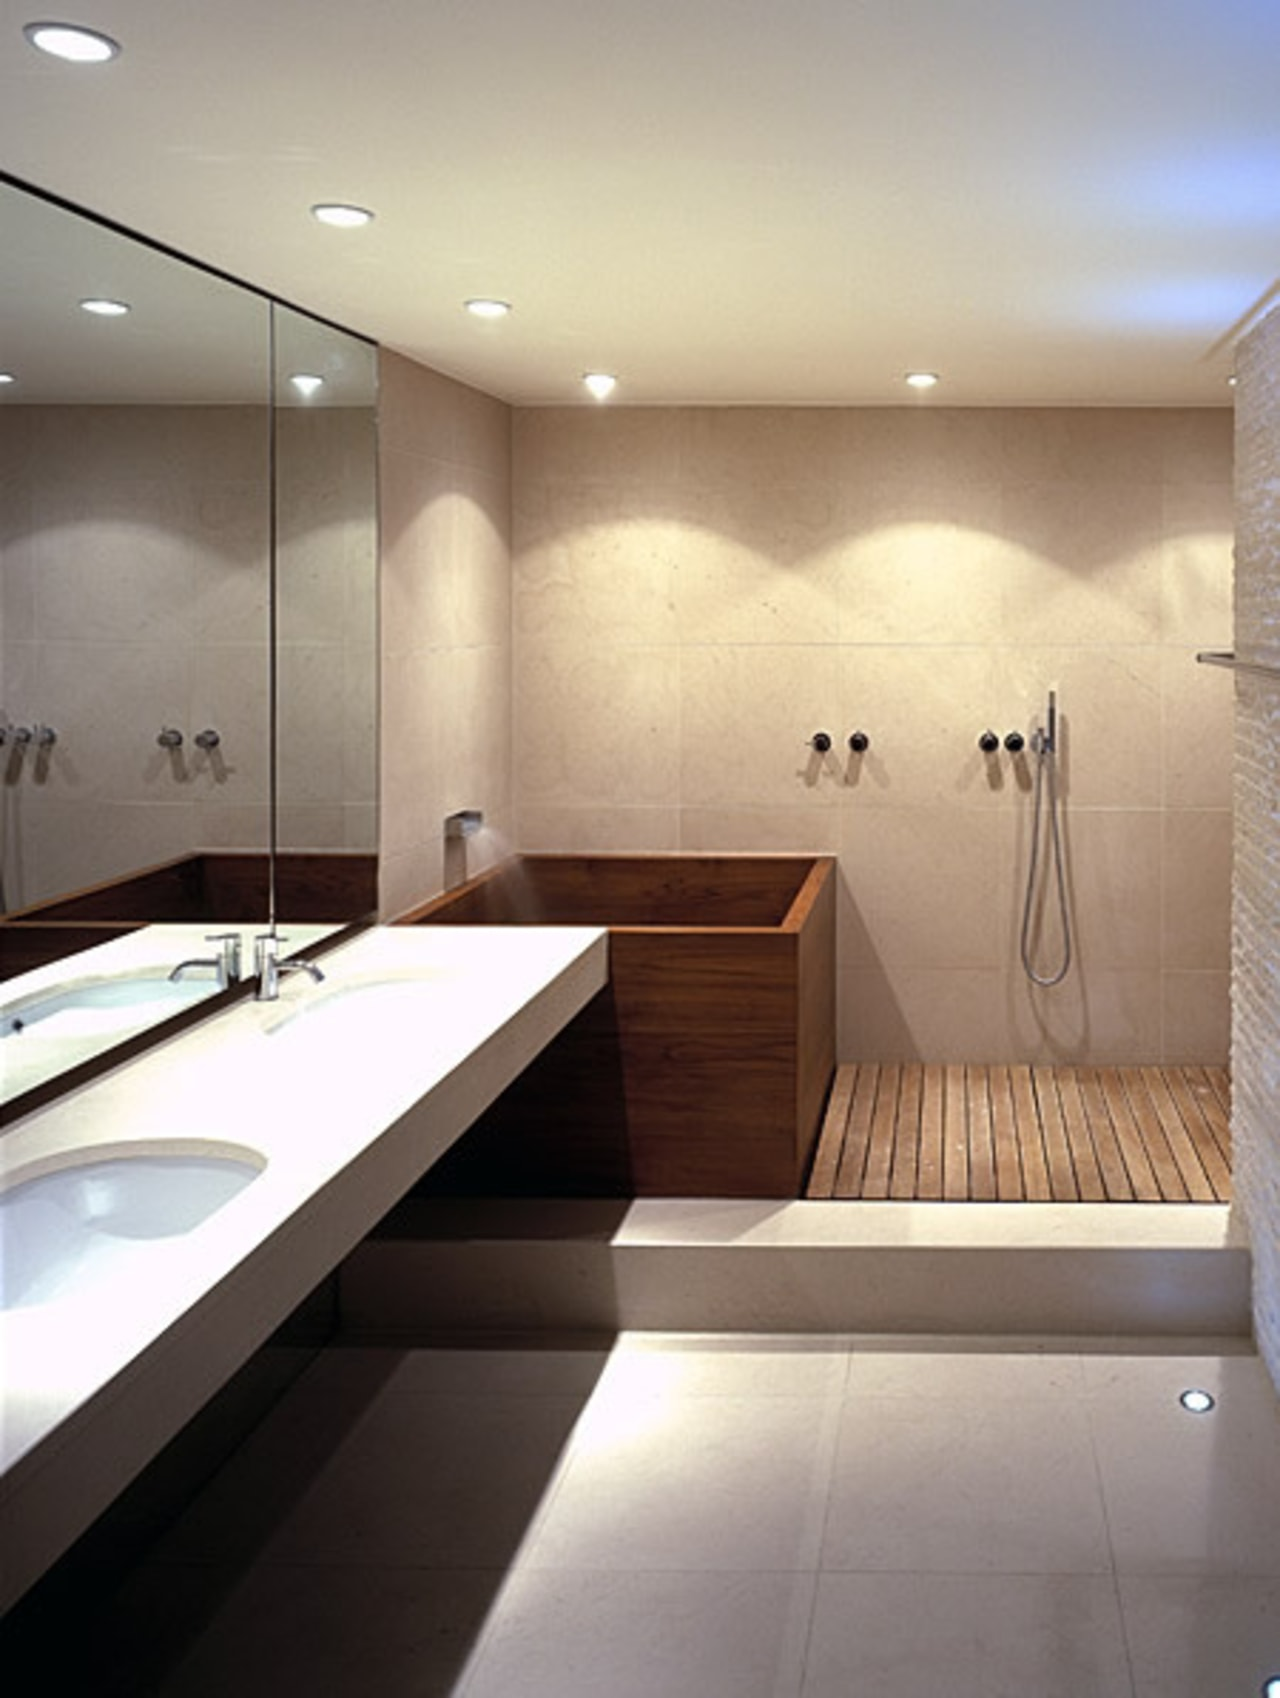 Plunge bath tubs and specially designed corner-tubs that architecture, bathroom, bathtub, building, ceiling, floor, flooring, house, interior design, lighting, material property, plumbing fixture, property, room, tap, tile, gray